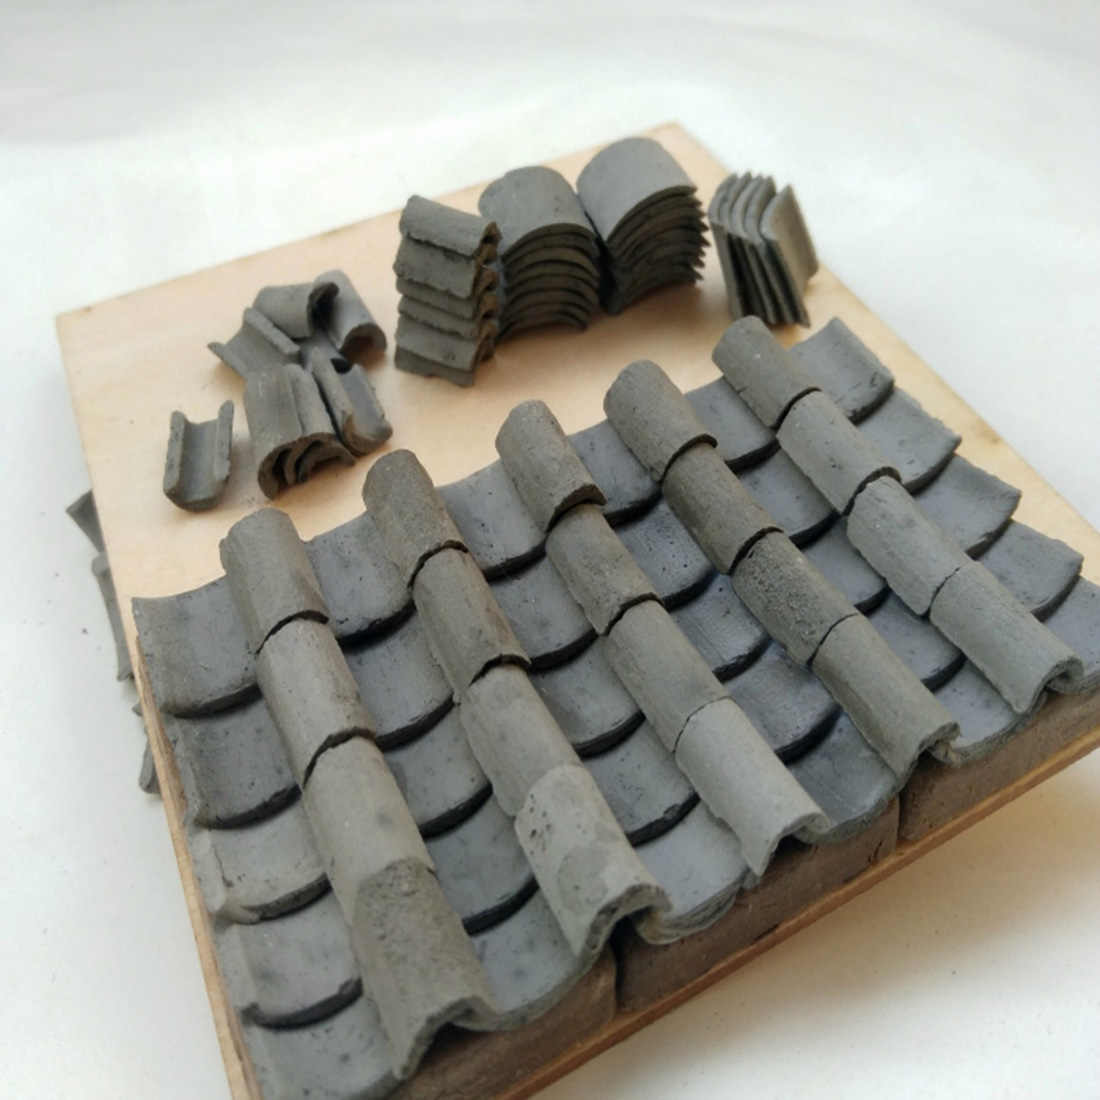 20Pcs 1:16 Simulation Bricks Model Mini Bricks For DIY Sand Table Scenery Building - Cyan